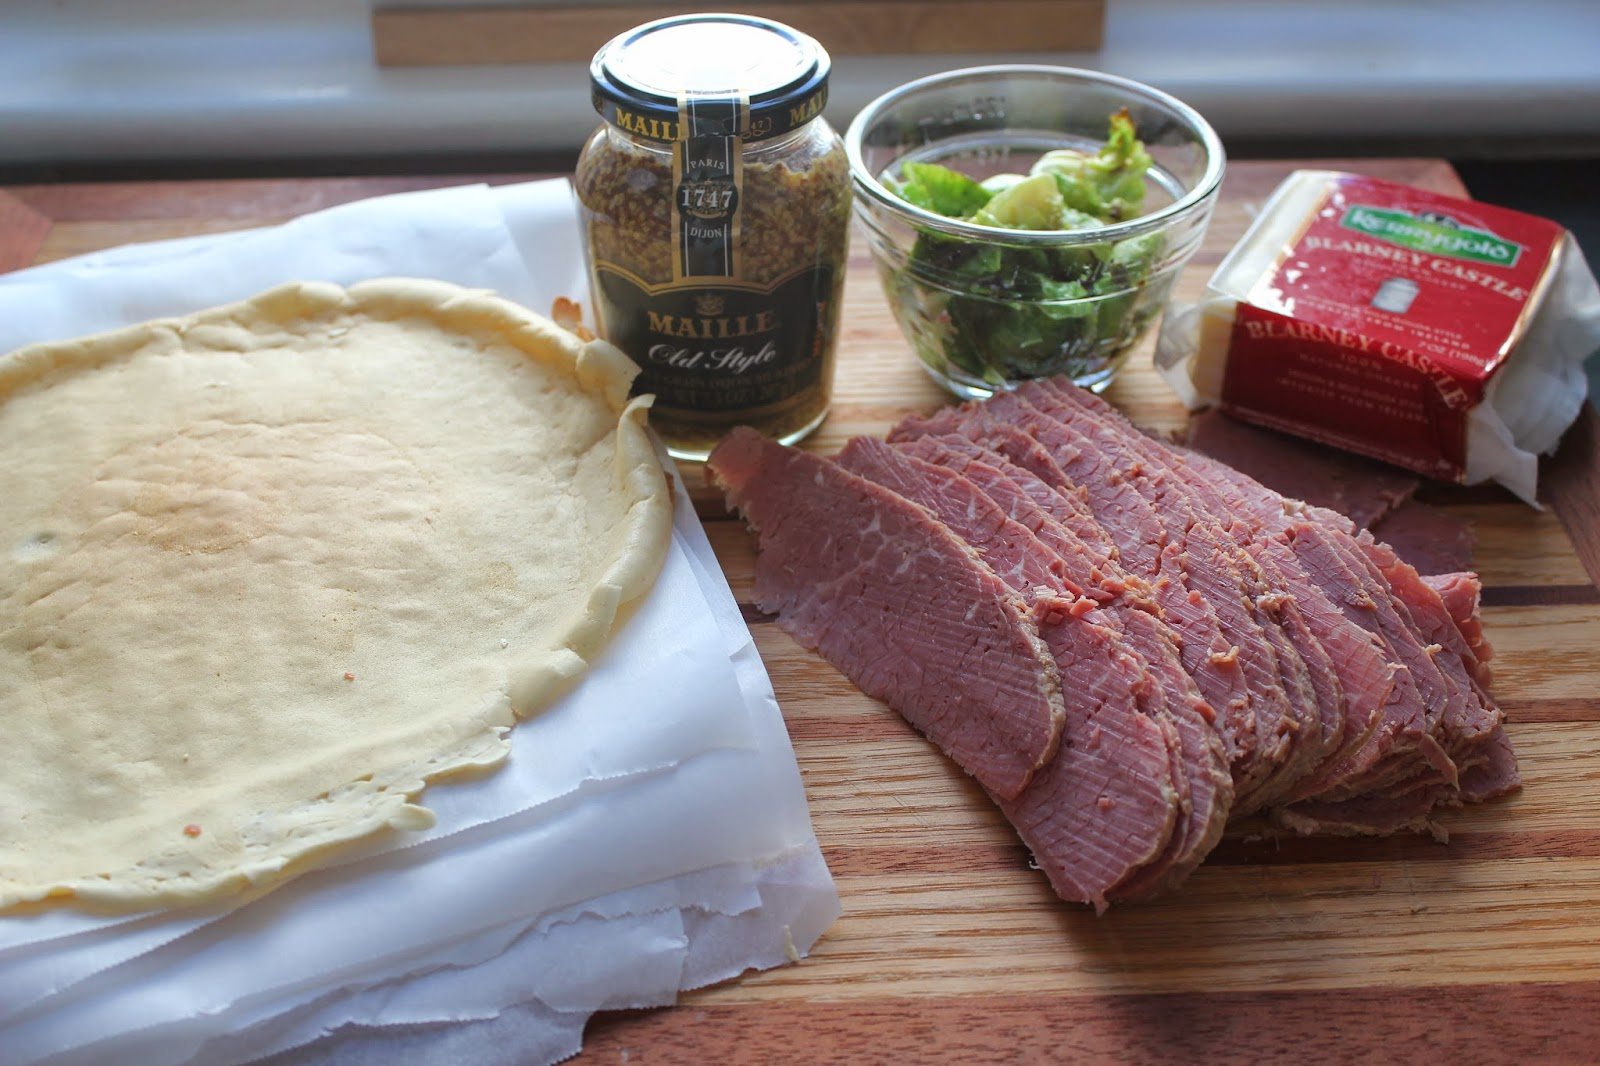 Ingredients for corned beef on rye crepes